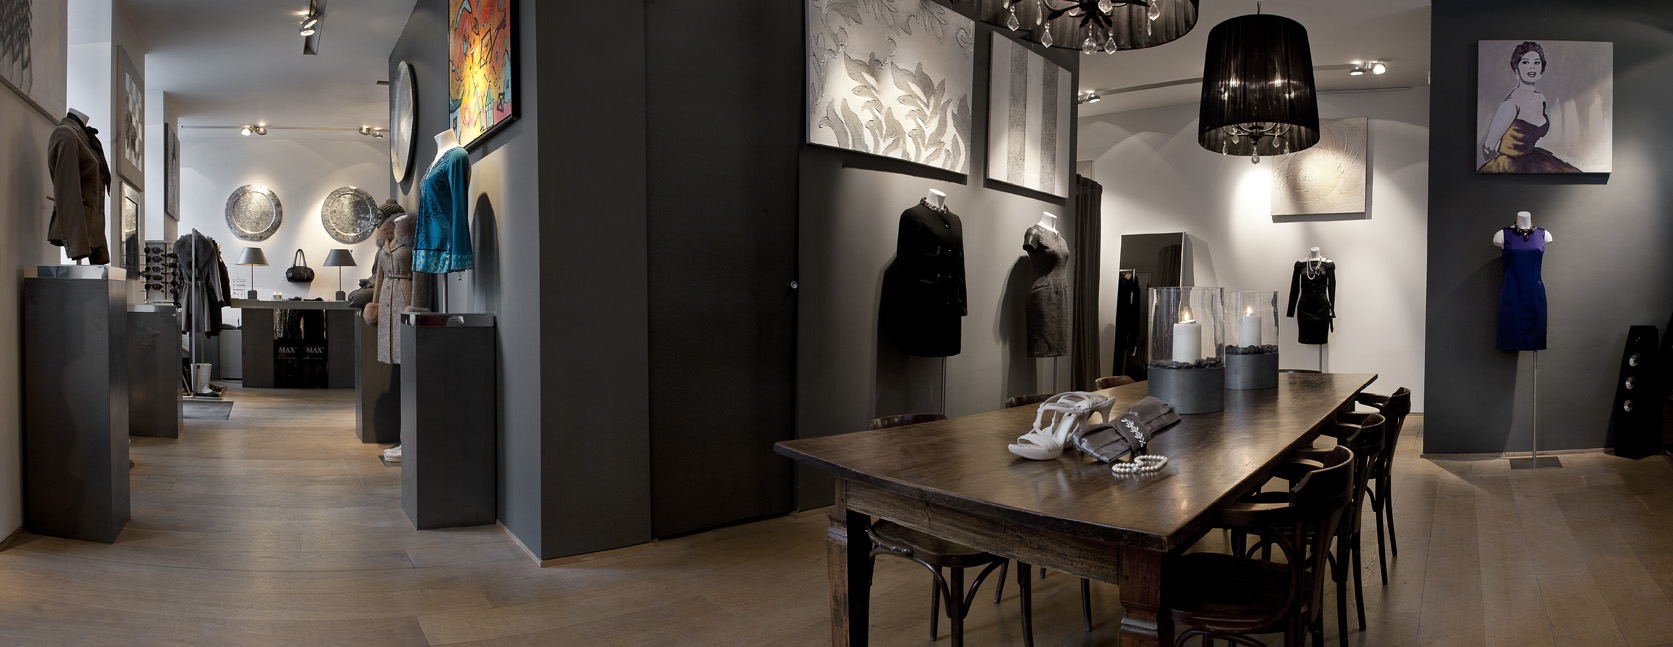 Max Maastricht - Art & Fashion